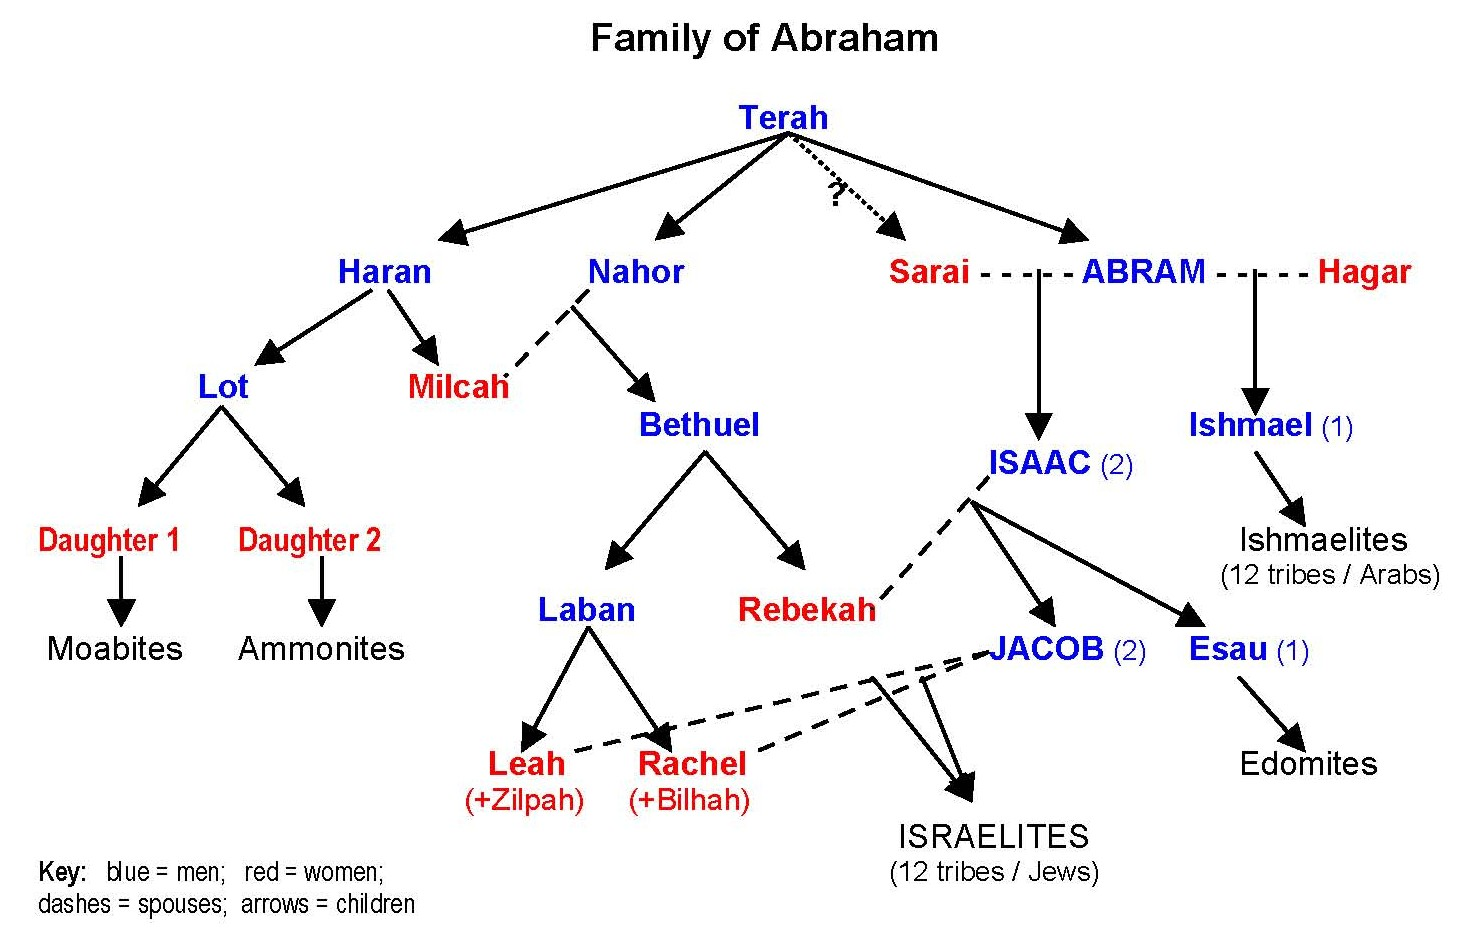 Abraham's family tree